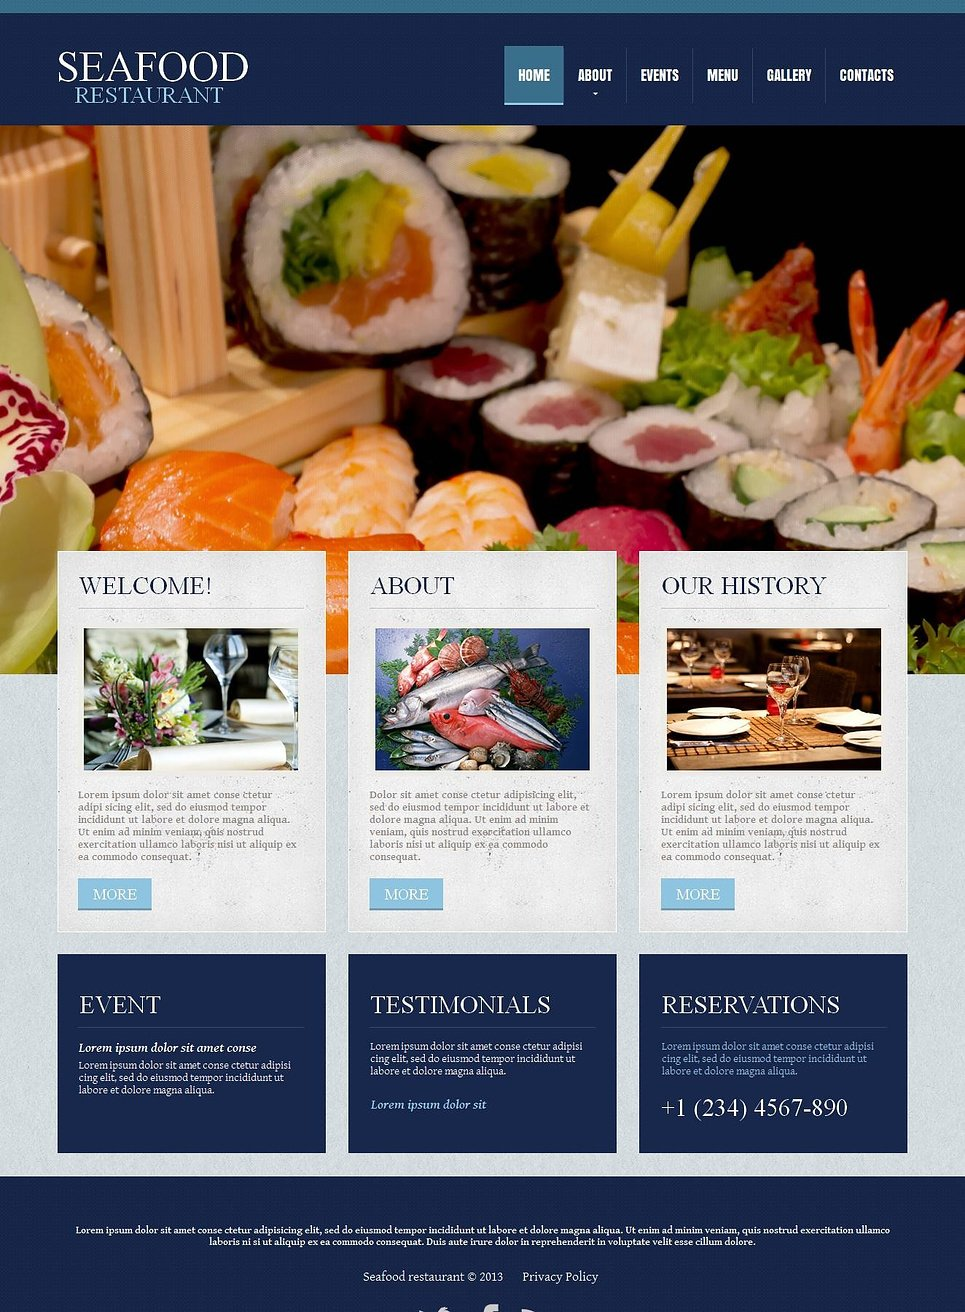 Seafood Restaurant Website Template with Blue Design - image